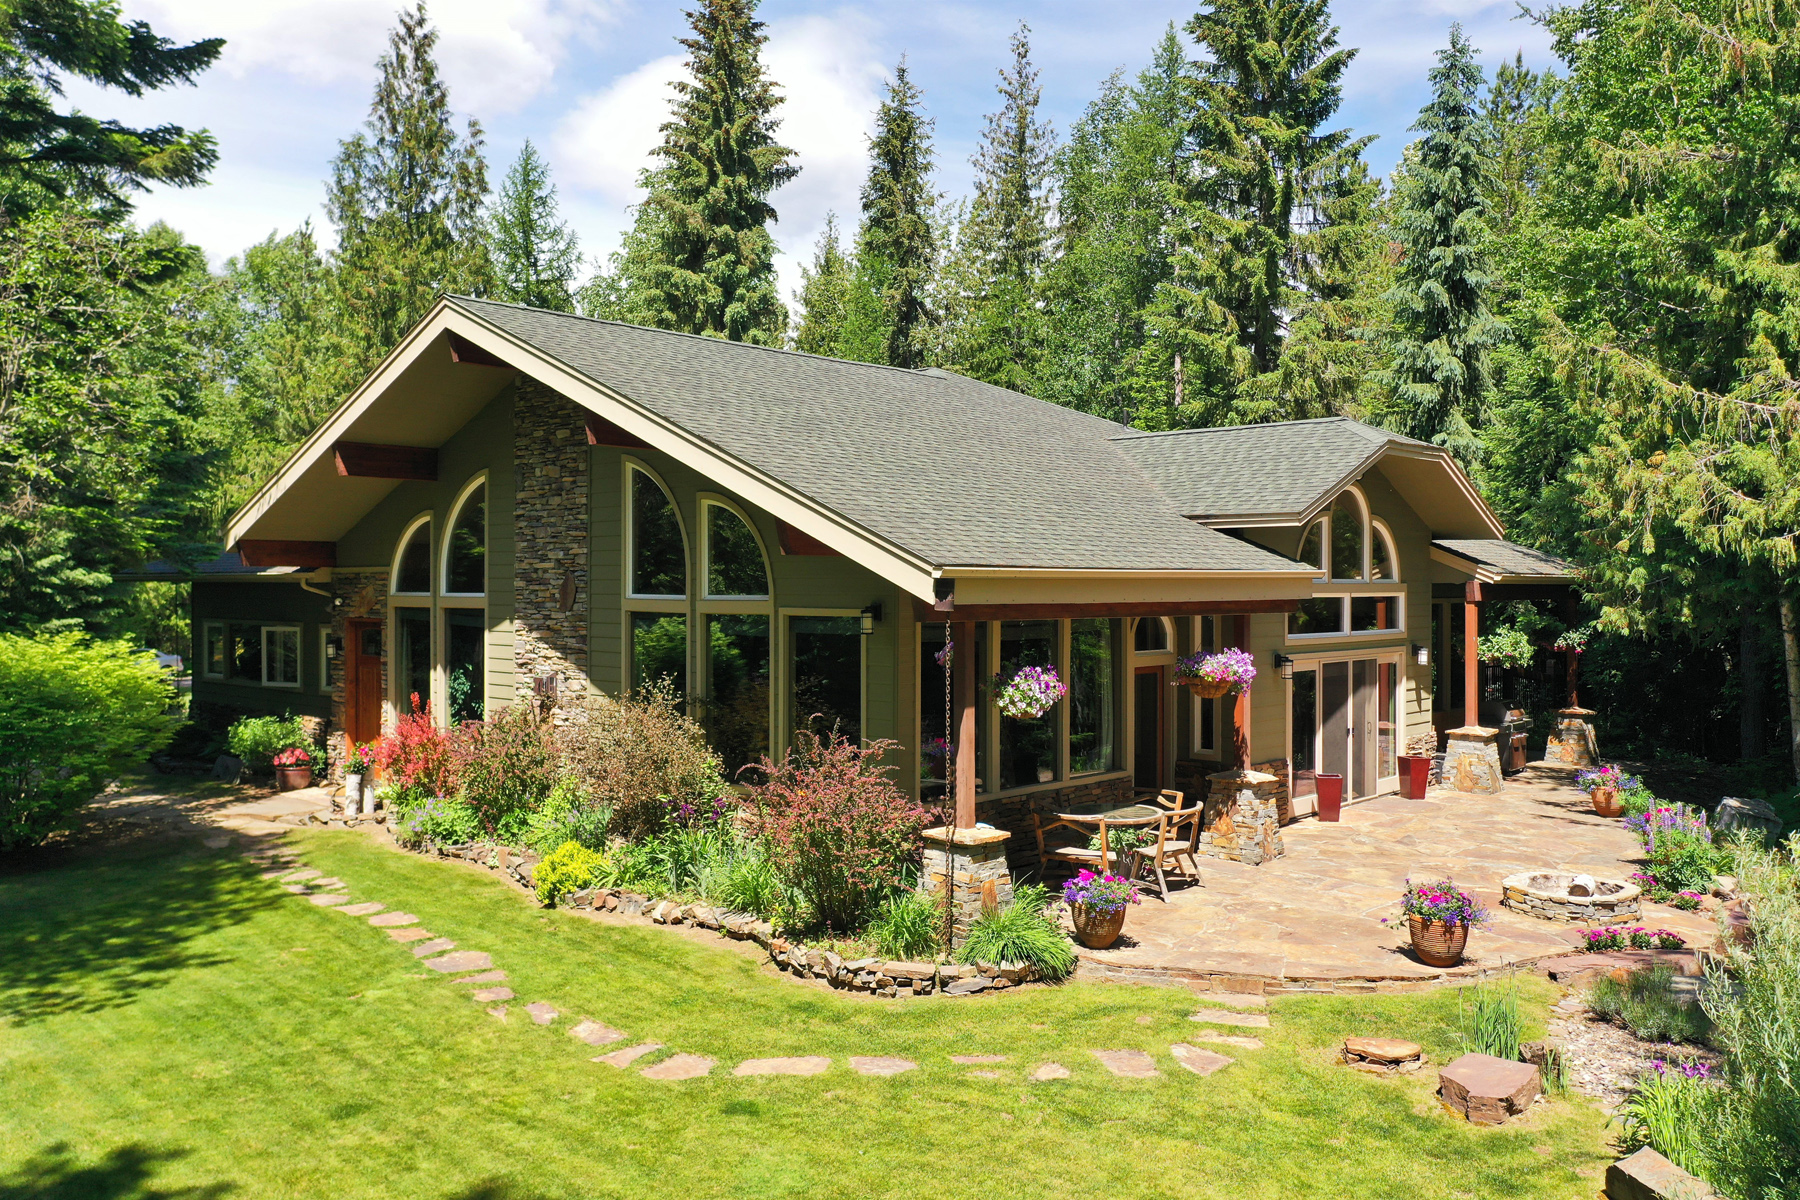 Single Family Homes for Active at Home & Acreage On The Pack River 222 Laricina Way, Sandpoint, Idaho 83864 United States